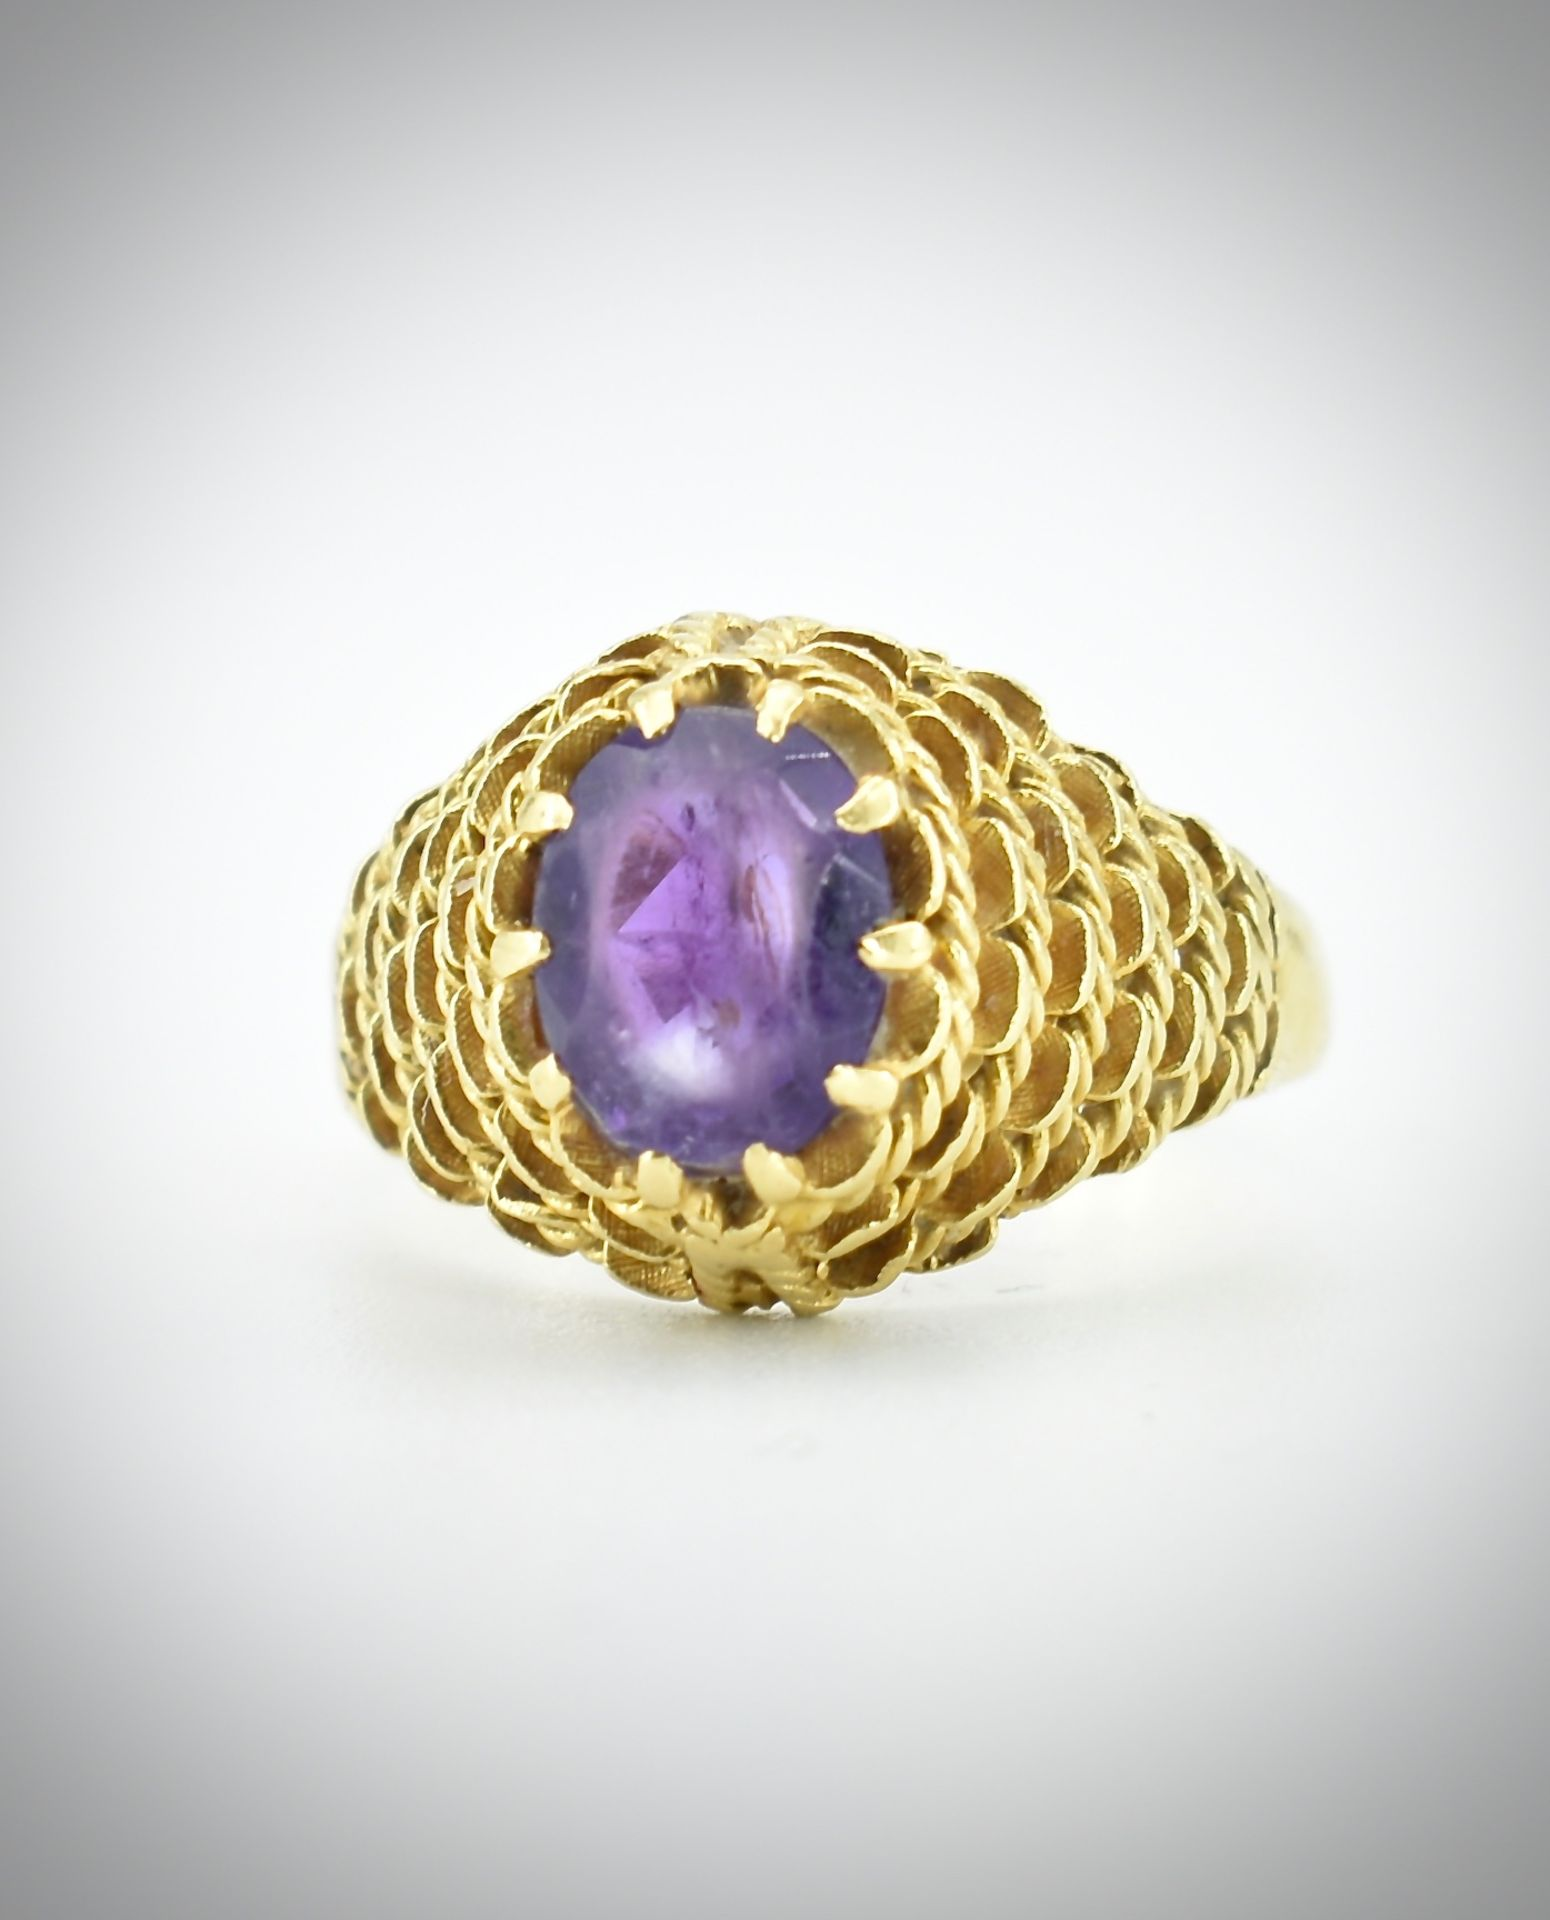 18ct Gold & Amethyst Ring - Image 7 of 7